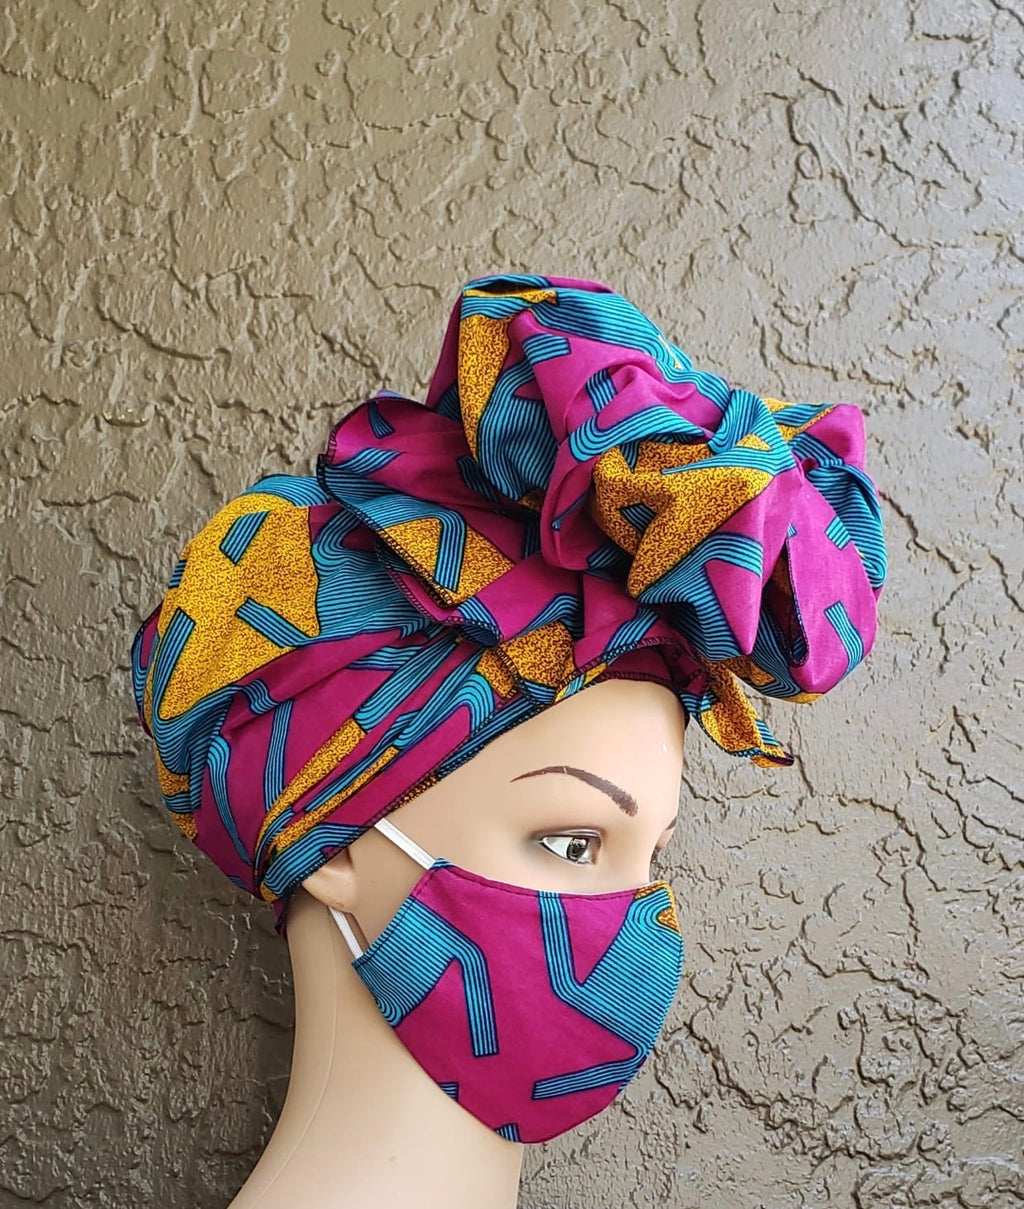 Fashion African Print Mask and Full Headwrap Purple Blue